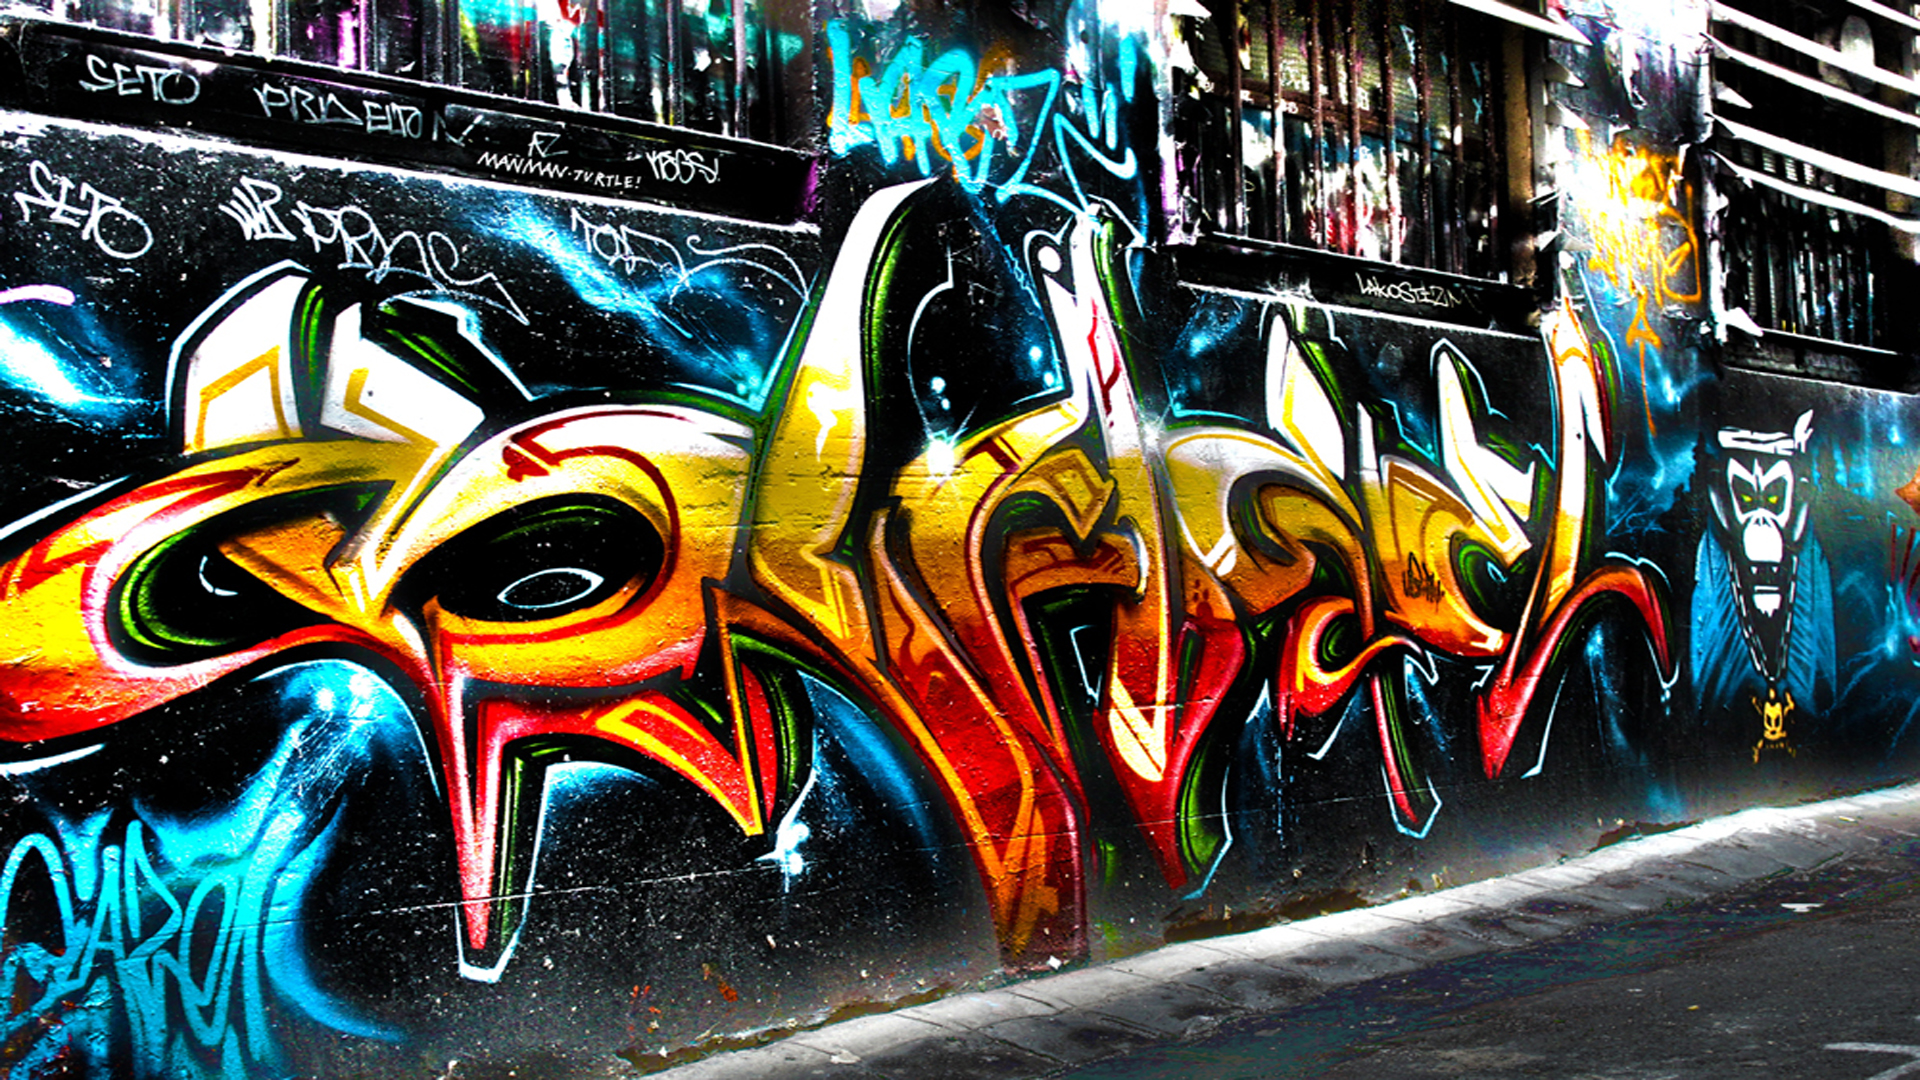 Graffiti Computer Wallpapers Desktop Backgrounds